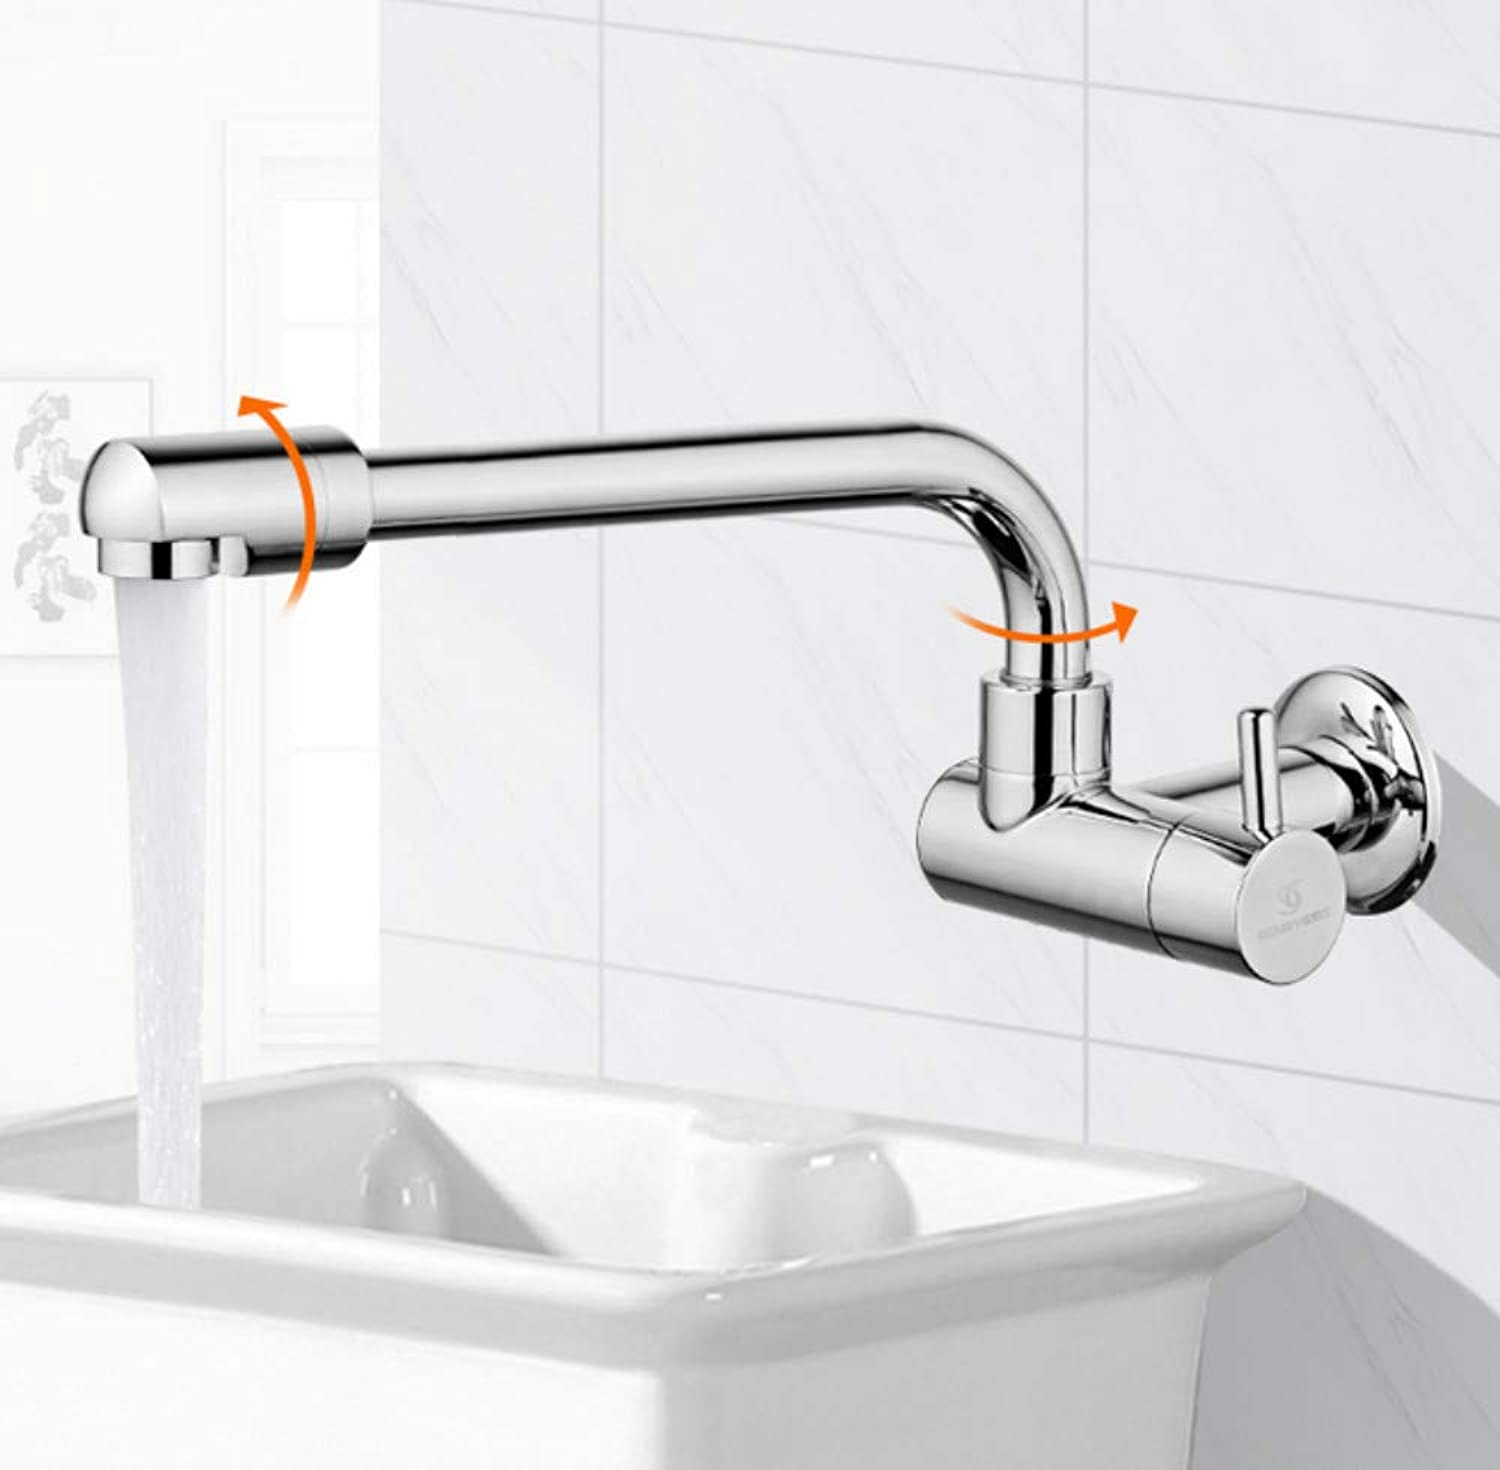 redOOY Extended wall-mounted single cold faucet Balcony laundry mop pool wash basin faucet splash-proof redatable home